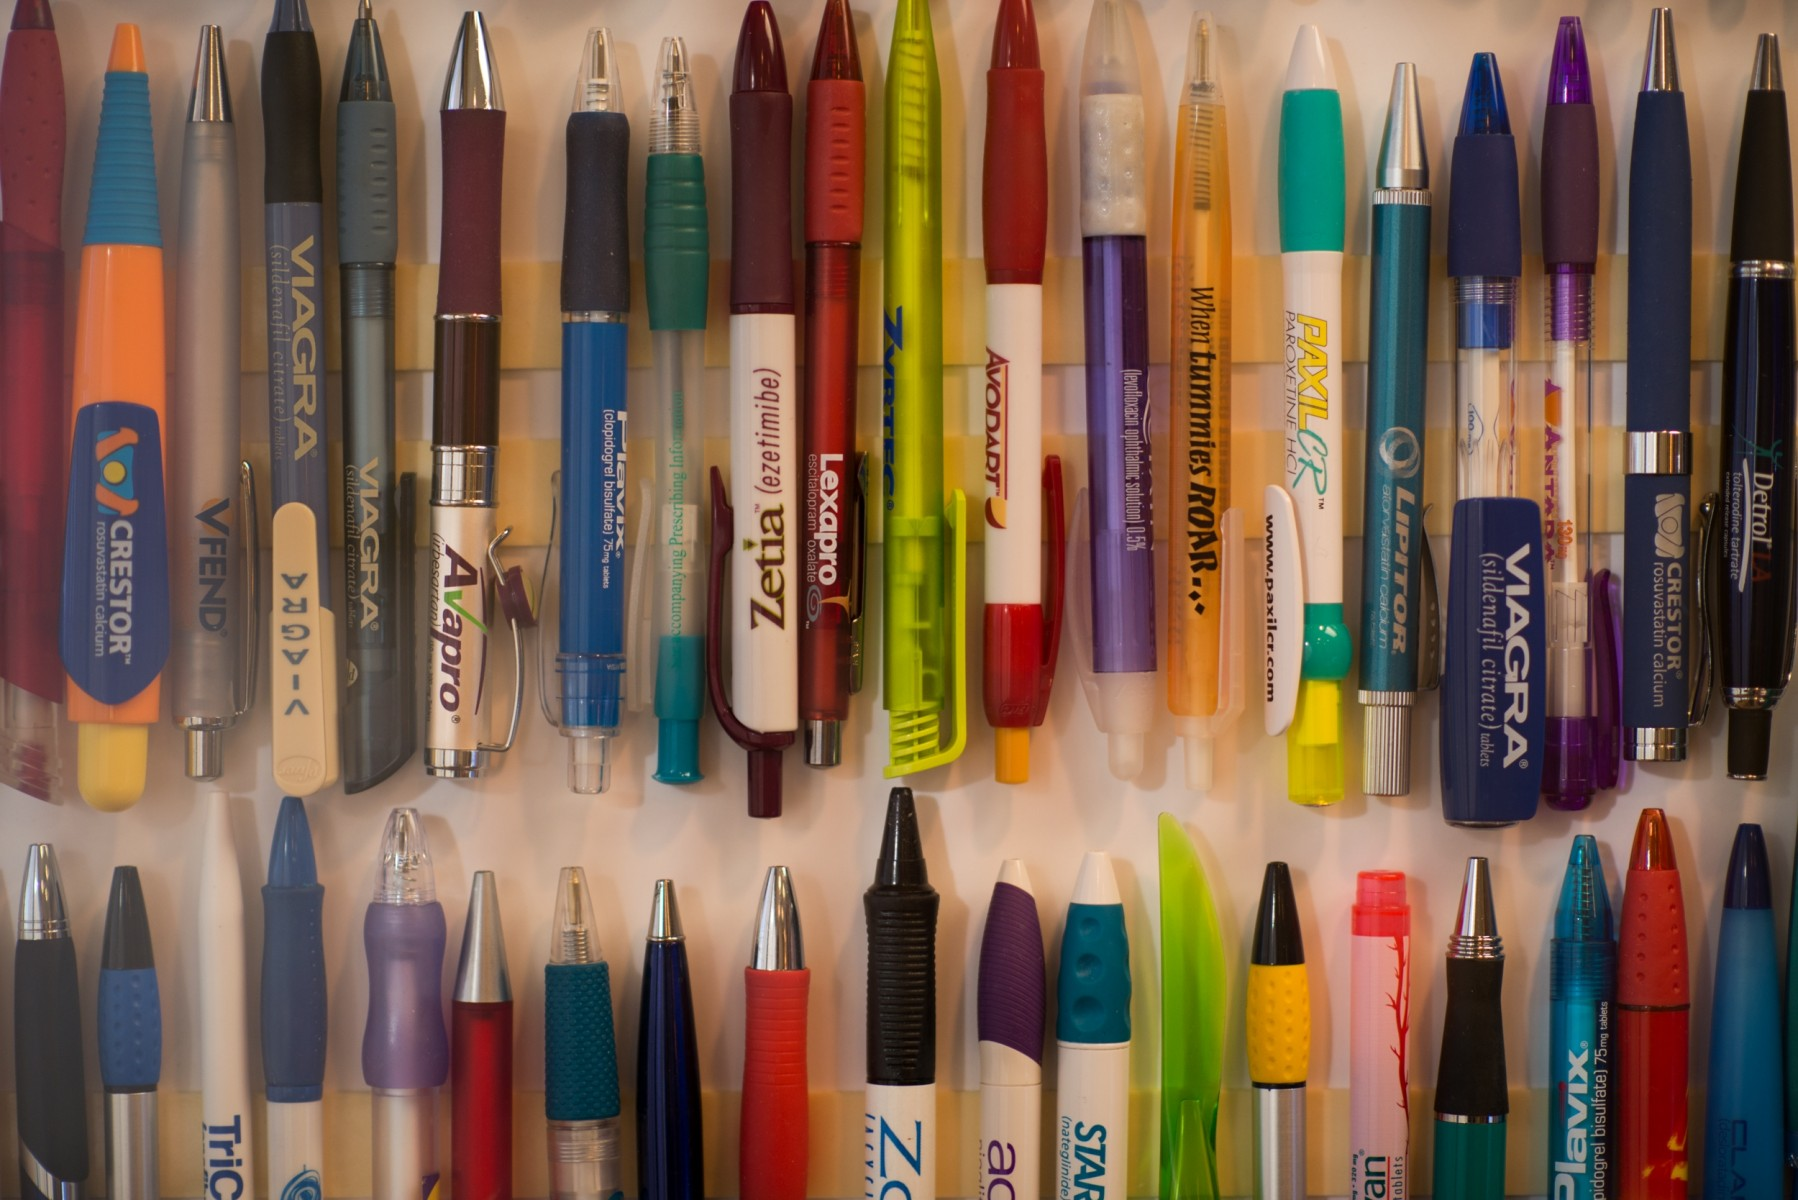 Physician Jeff Caran's pen collection. Photo by Cedars-Sinai.